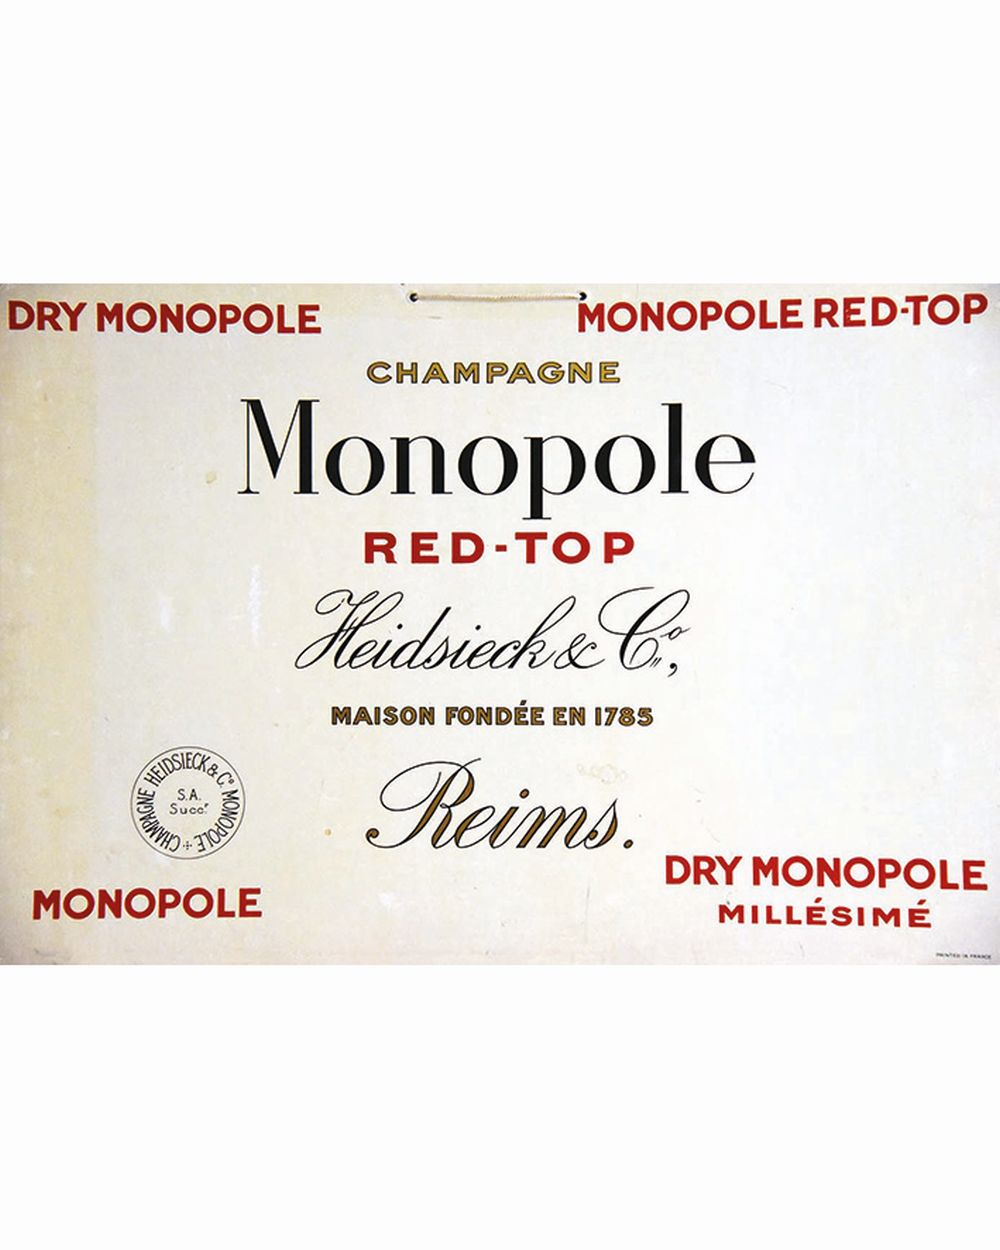 Champagne Monopole Red-Top Heidsieck & Cie     vers 1920  Reims (Marne)